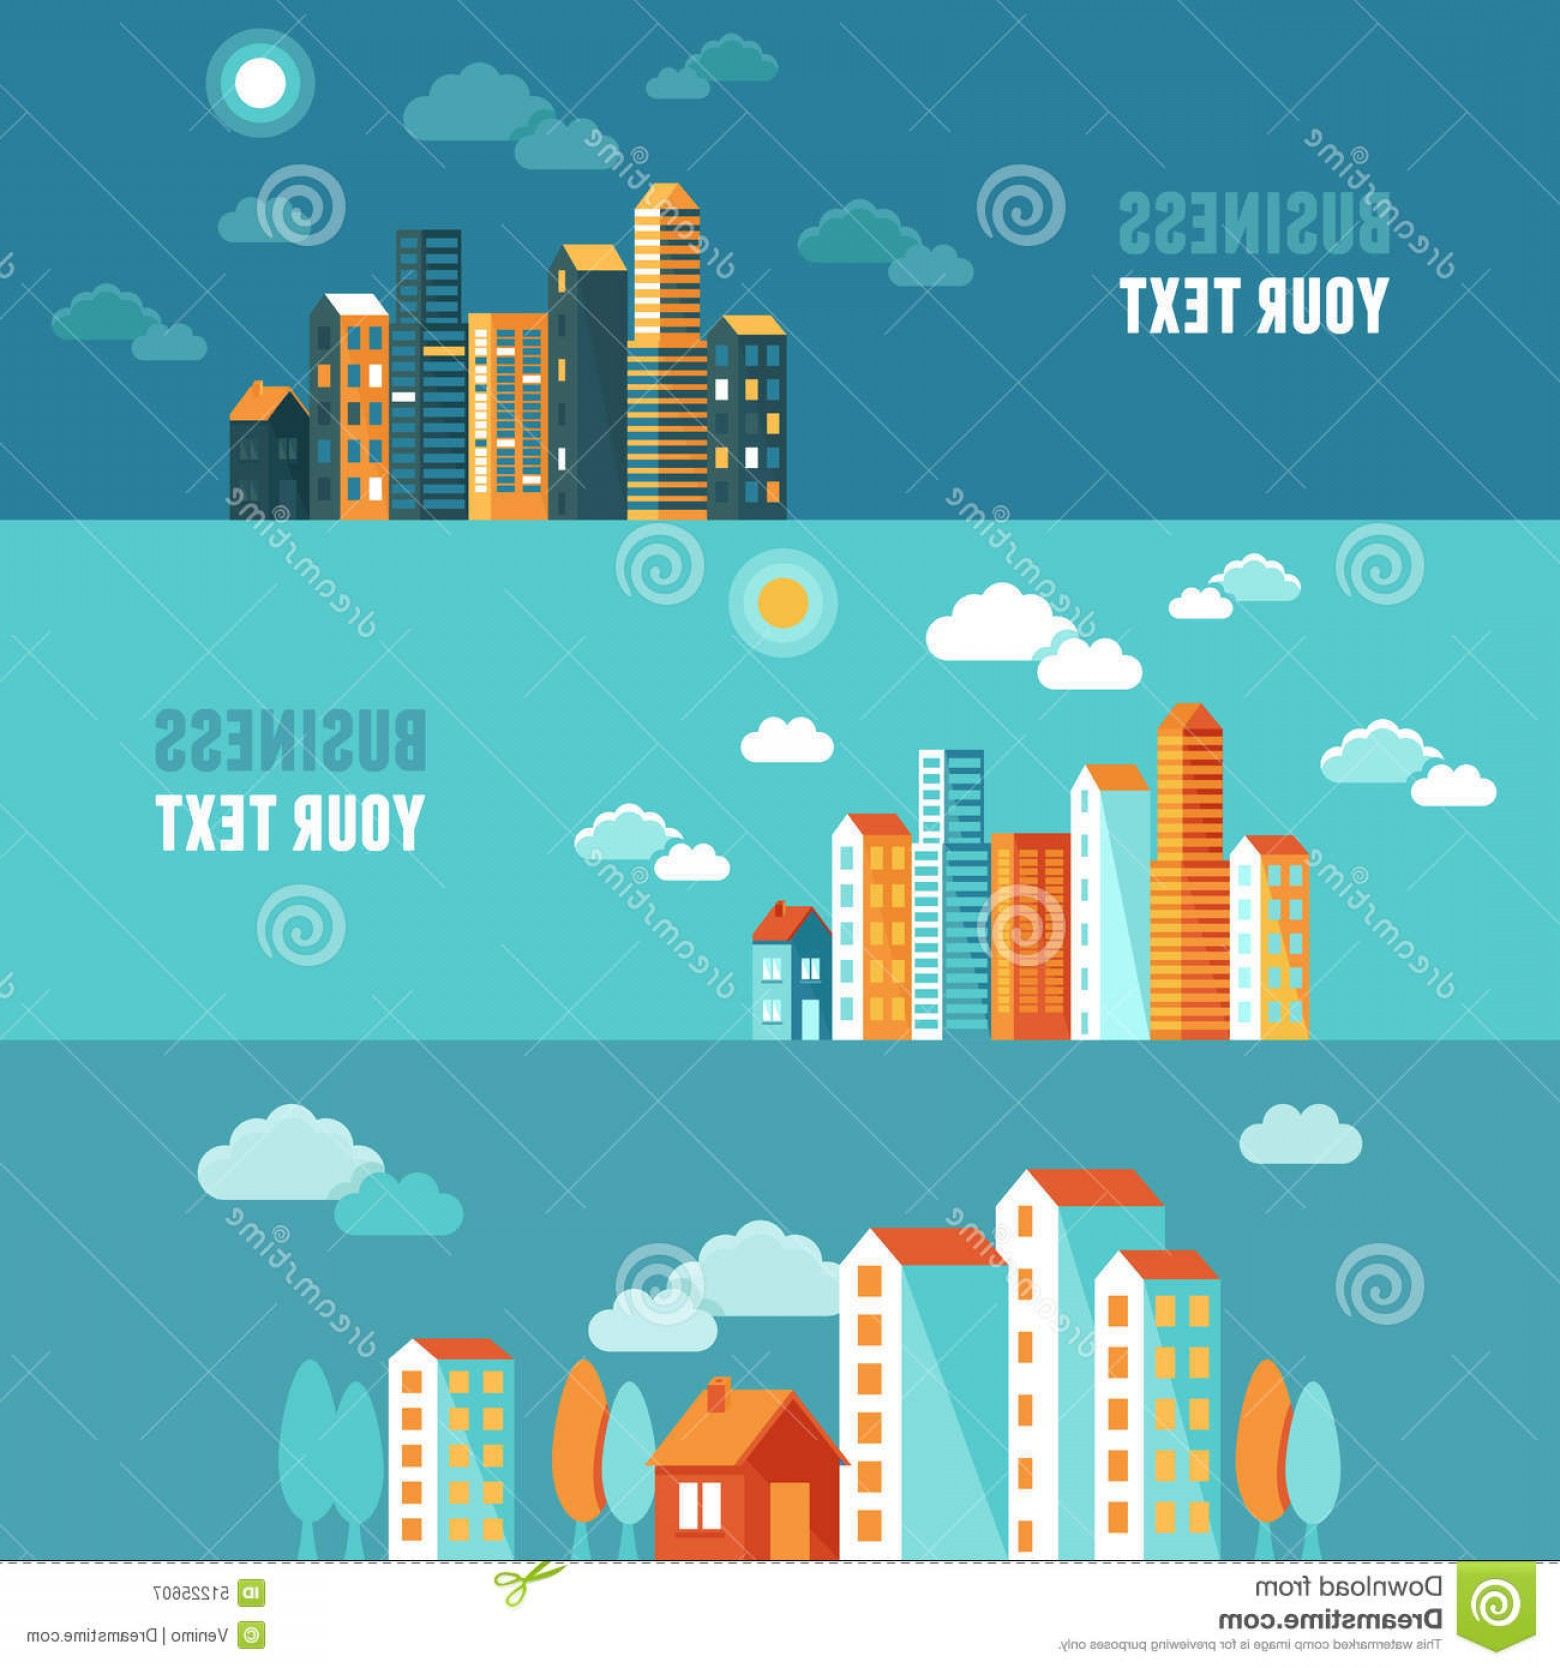 City Building Vector Free Download: Stock Illustration Vector City Illustration Flat Simple Style Houses Buildings Horizontal Banners Website Headers Image